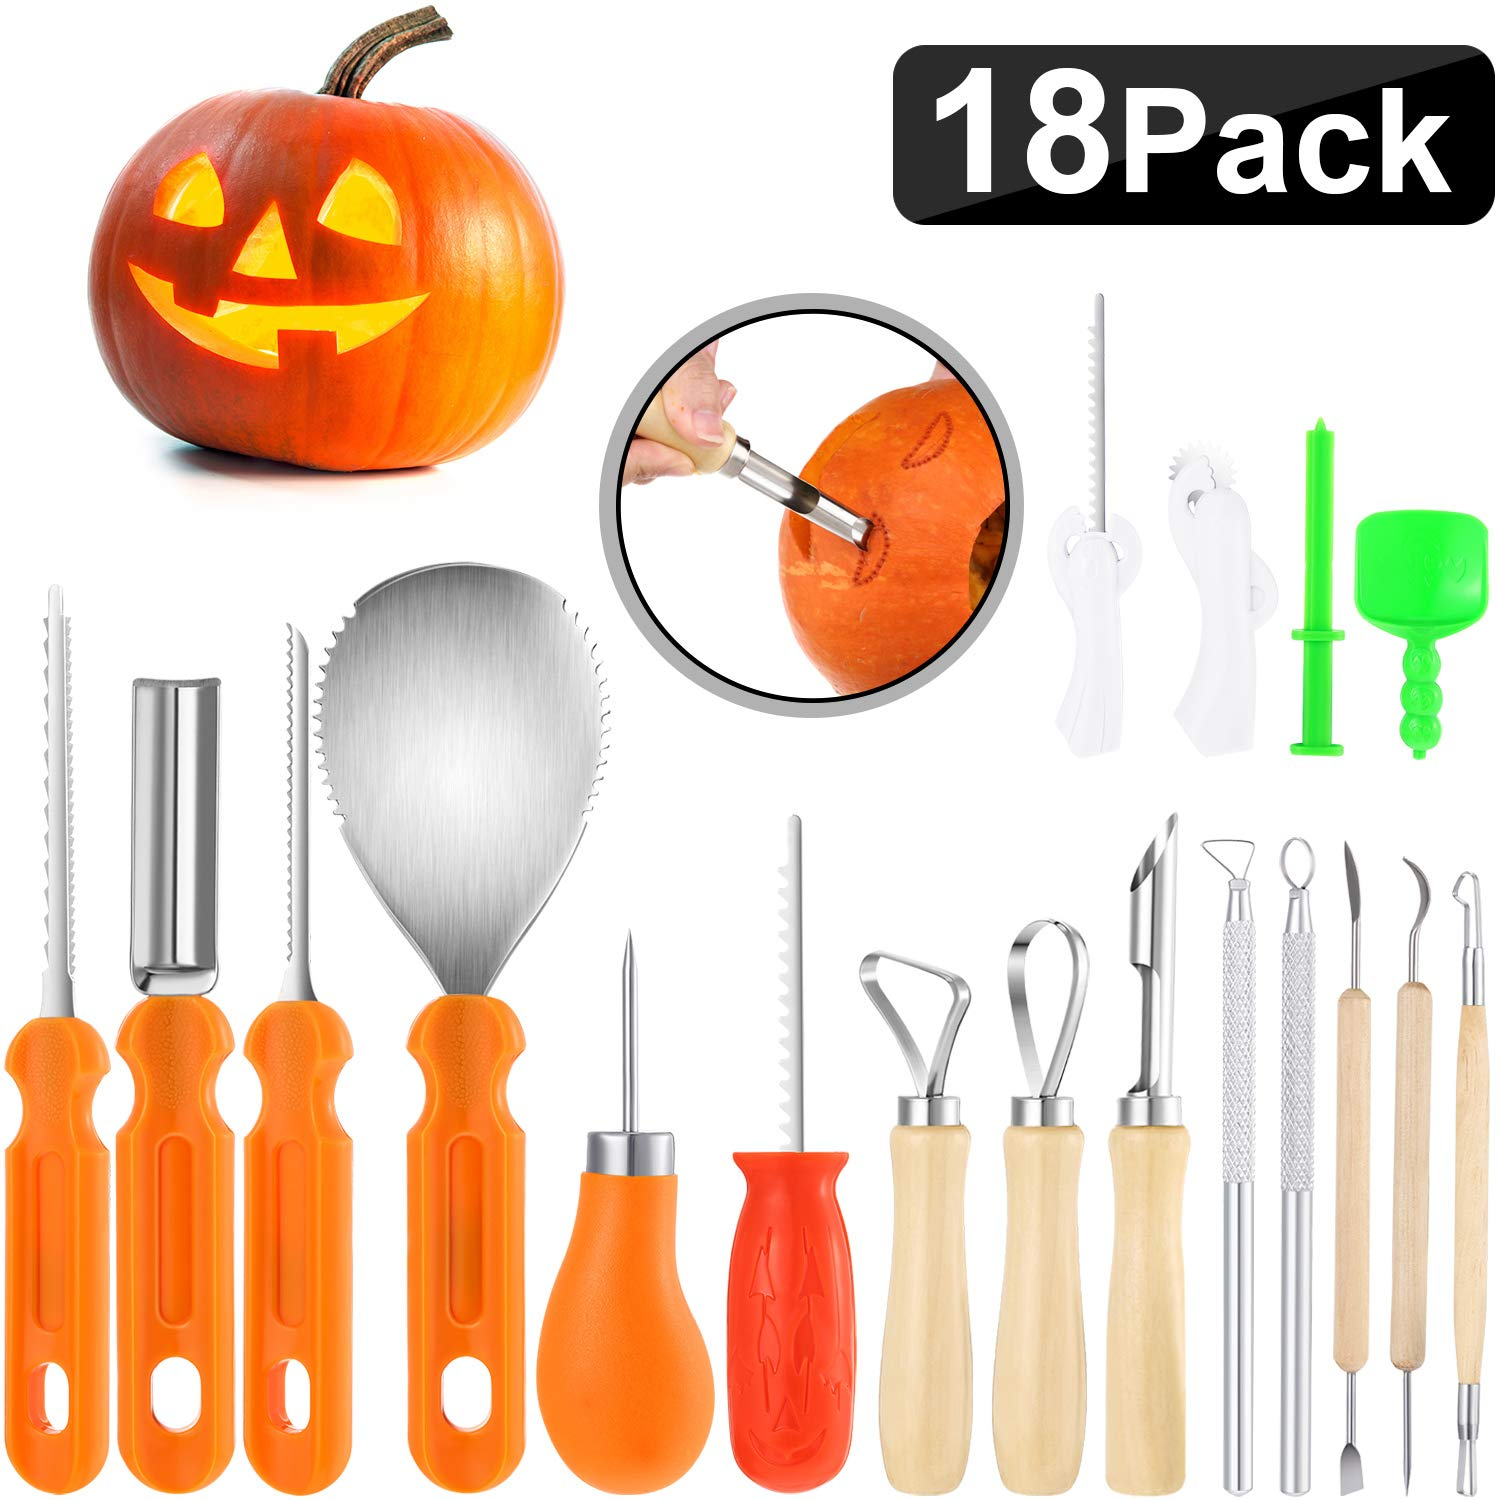 18 Pack Halloween Pumpkin Carving Kit, Includes 8 Pack Stainless Steel Pumpkin Carving Tools, 5 Pack Sturdy Fruit Engrave Tool, 5 Pack Pumpkin Stencil and Carving Set by Mudder